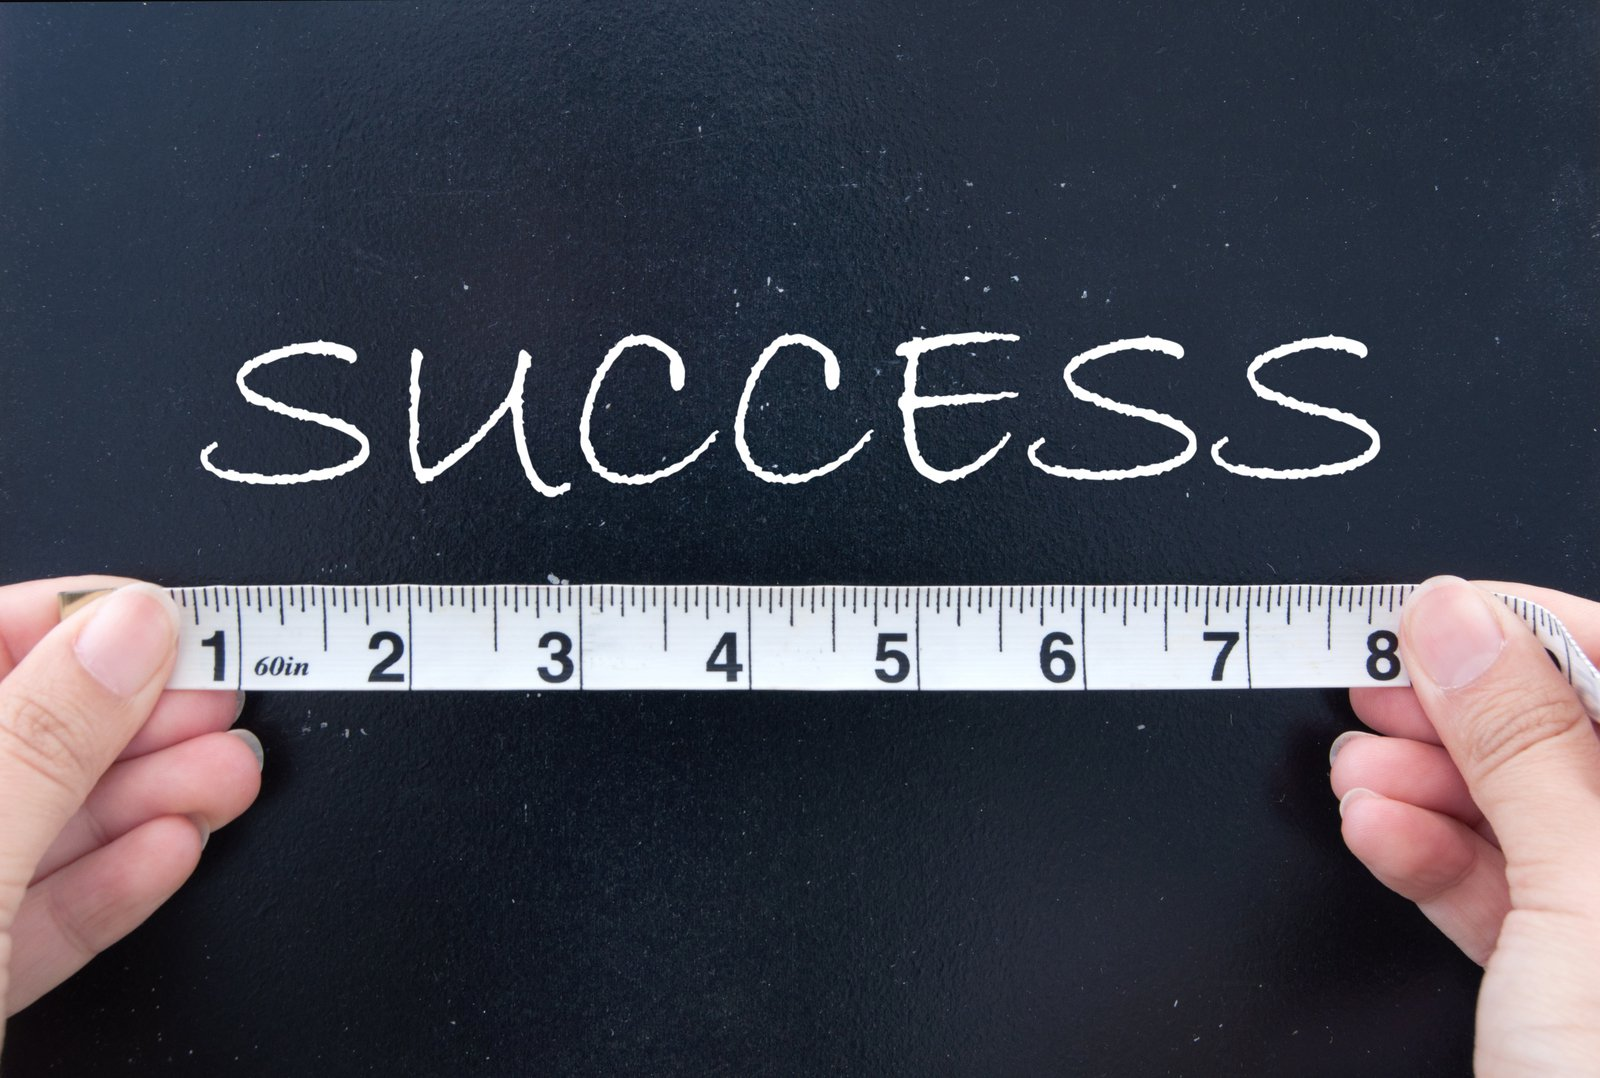 How can I measure success?